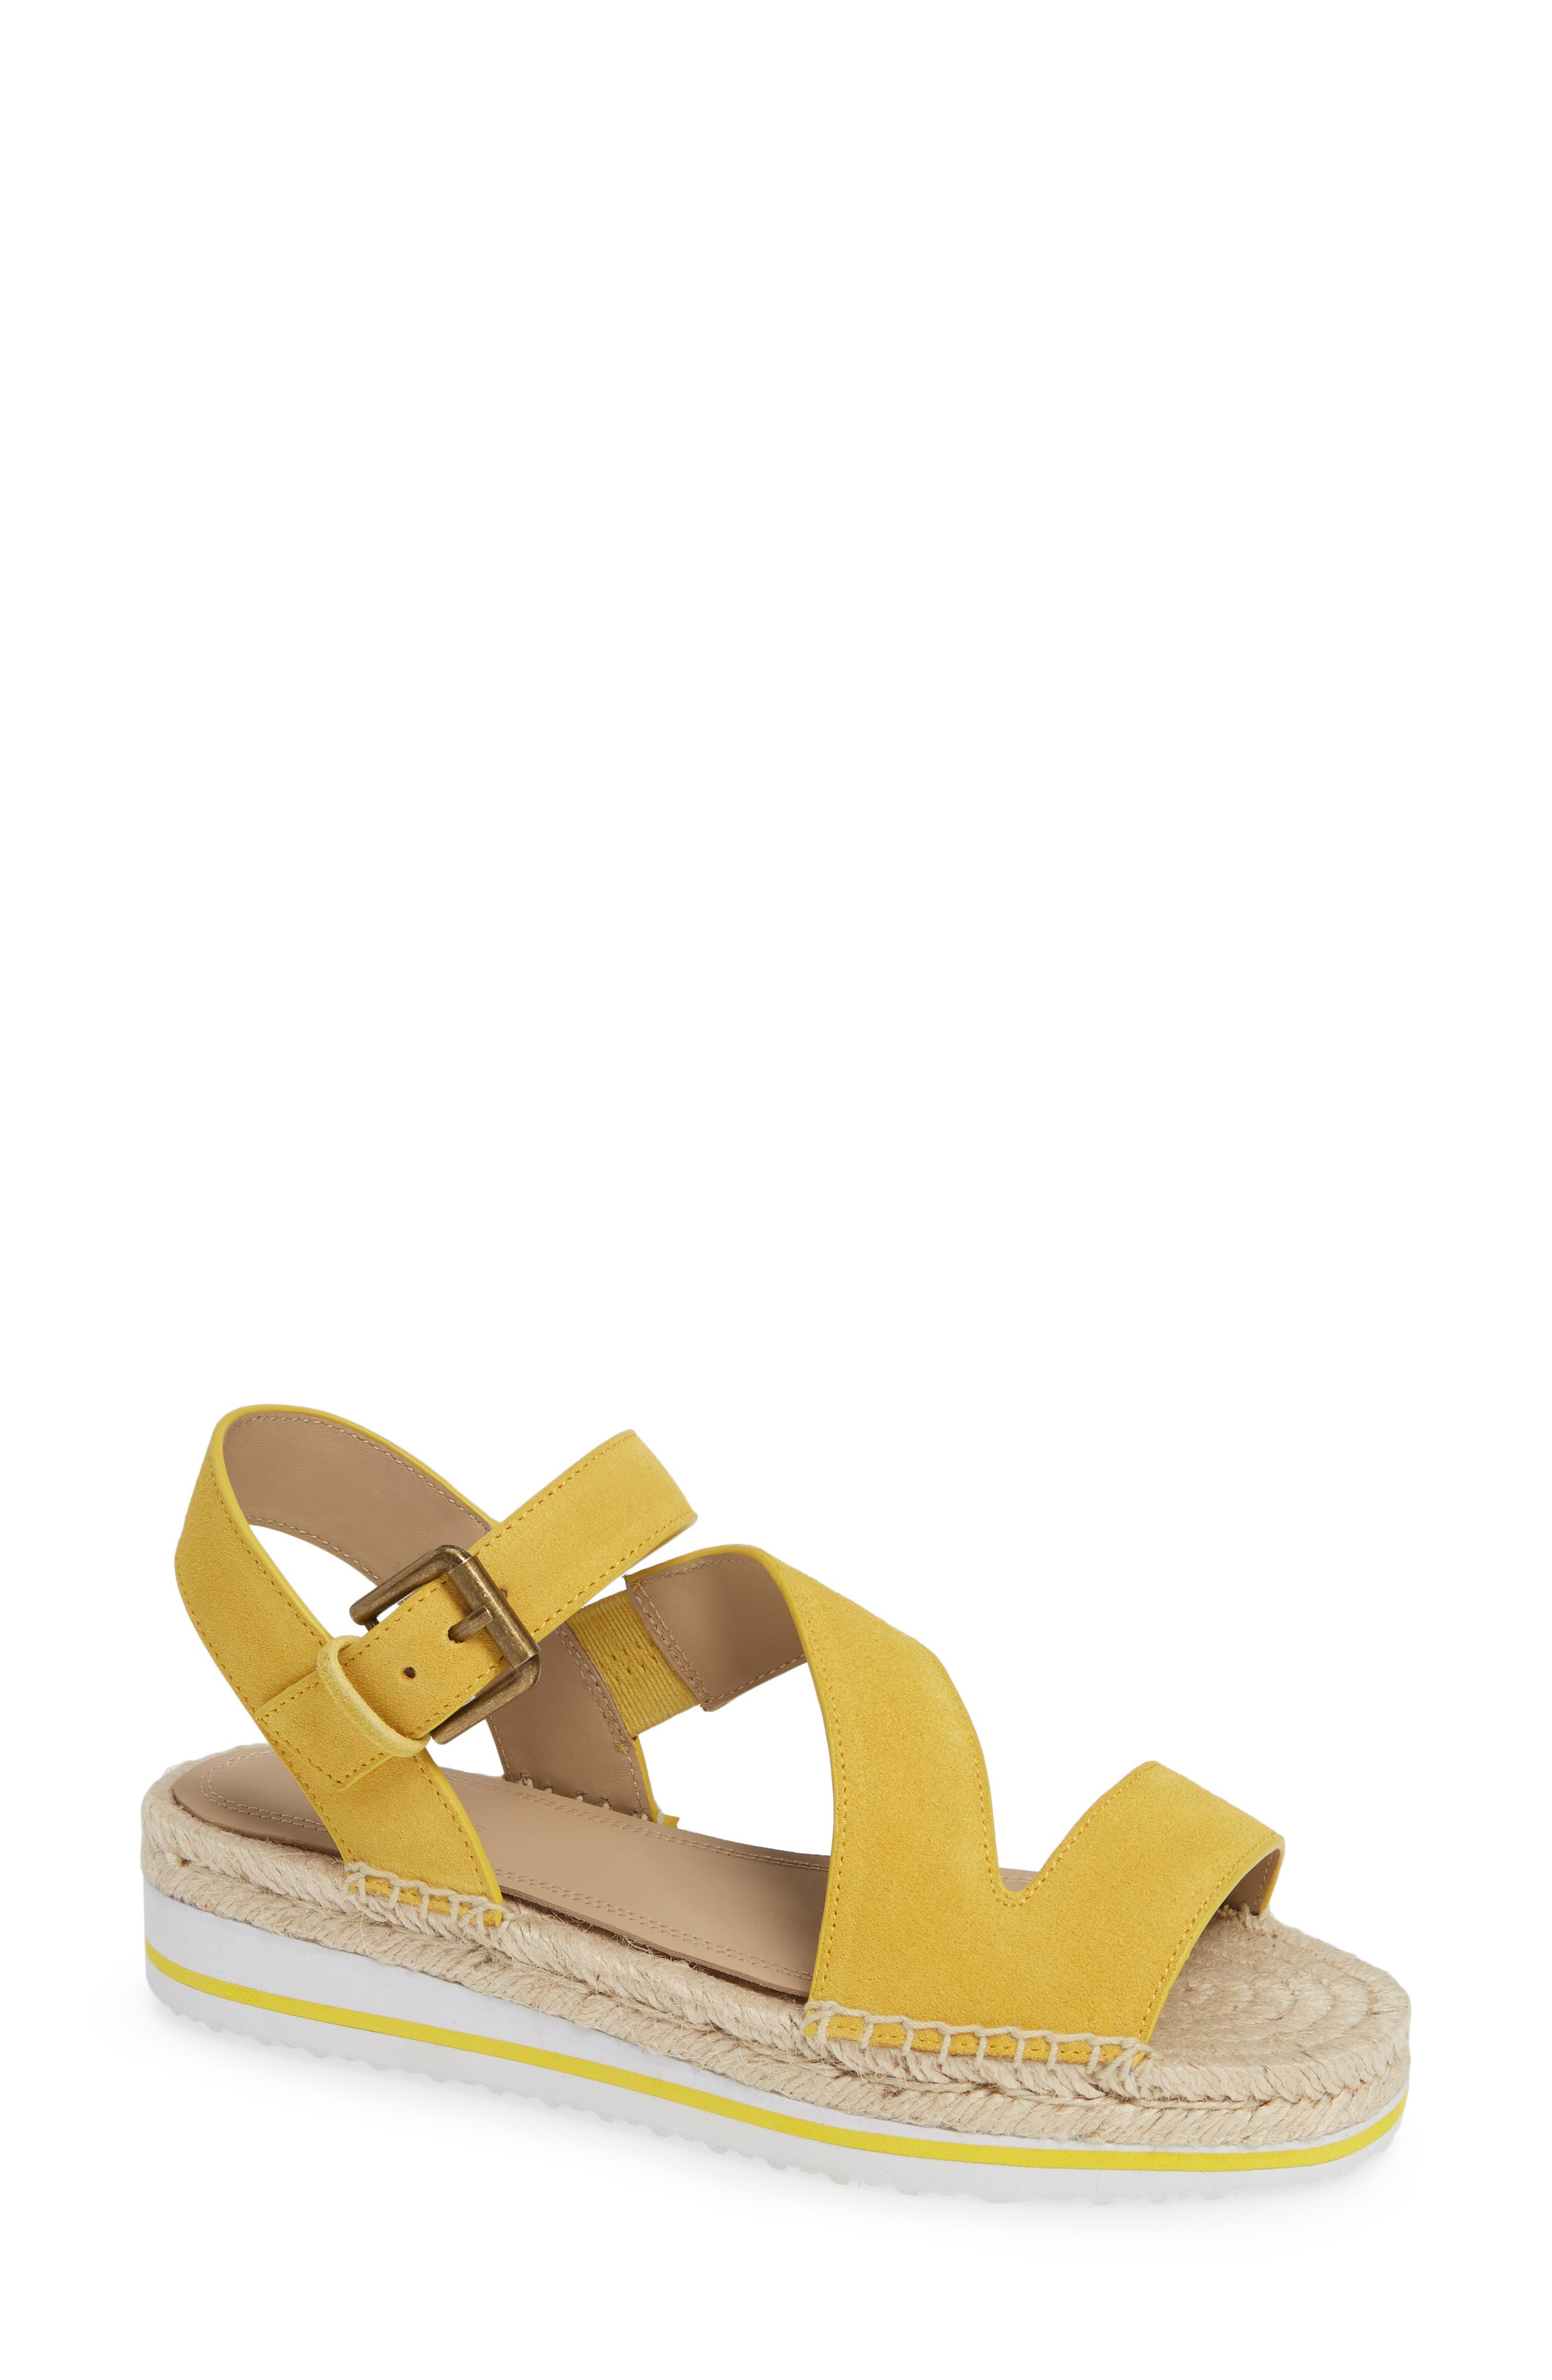 Nordstrom Signature Areanna Strappy Espadrille Sandal - Yellow